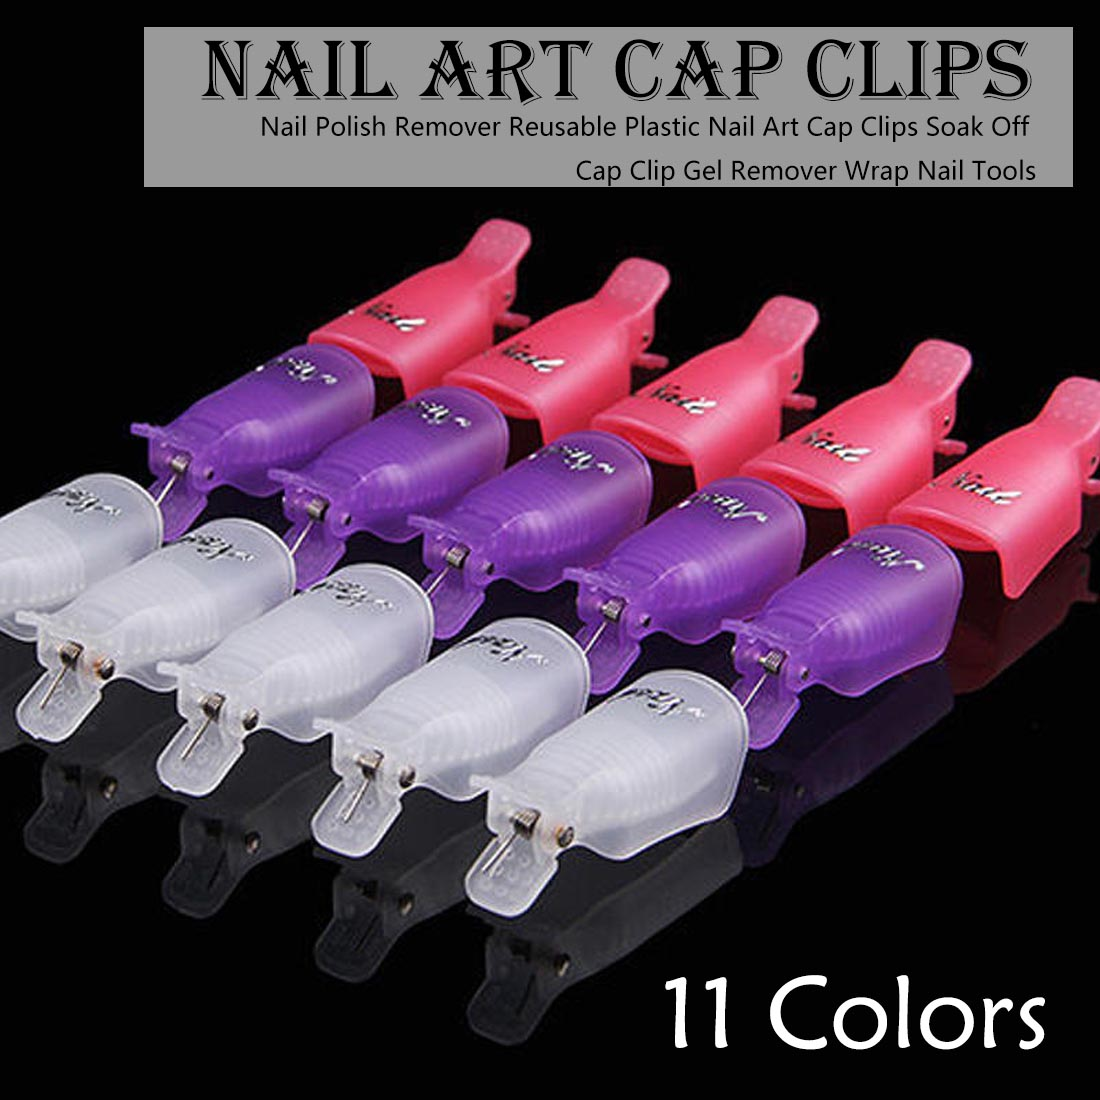 10pcs UV Gel Remover Cap Clips For Gel Varnish Degreaser For Nails Manicure Clamps Plastic Acrylic Nail Art Soak Off Clip Cap